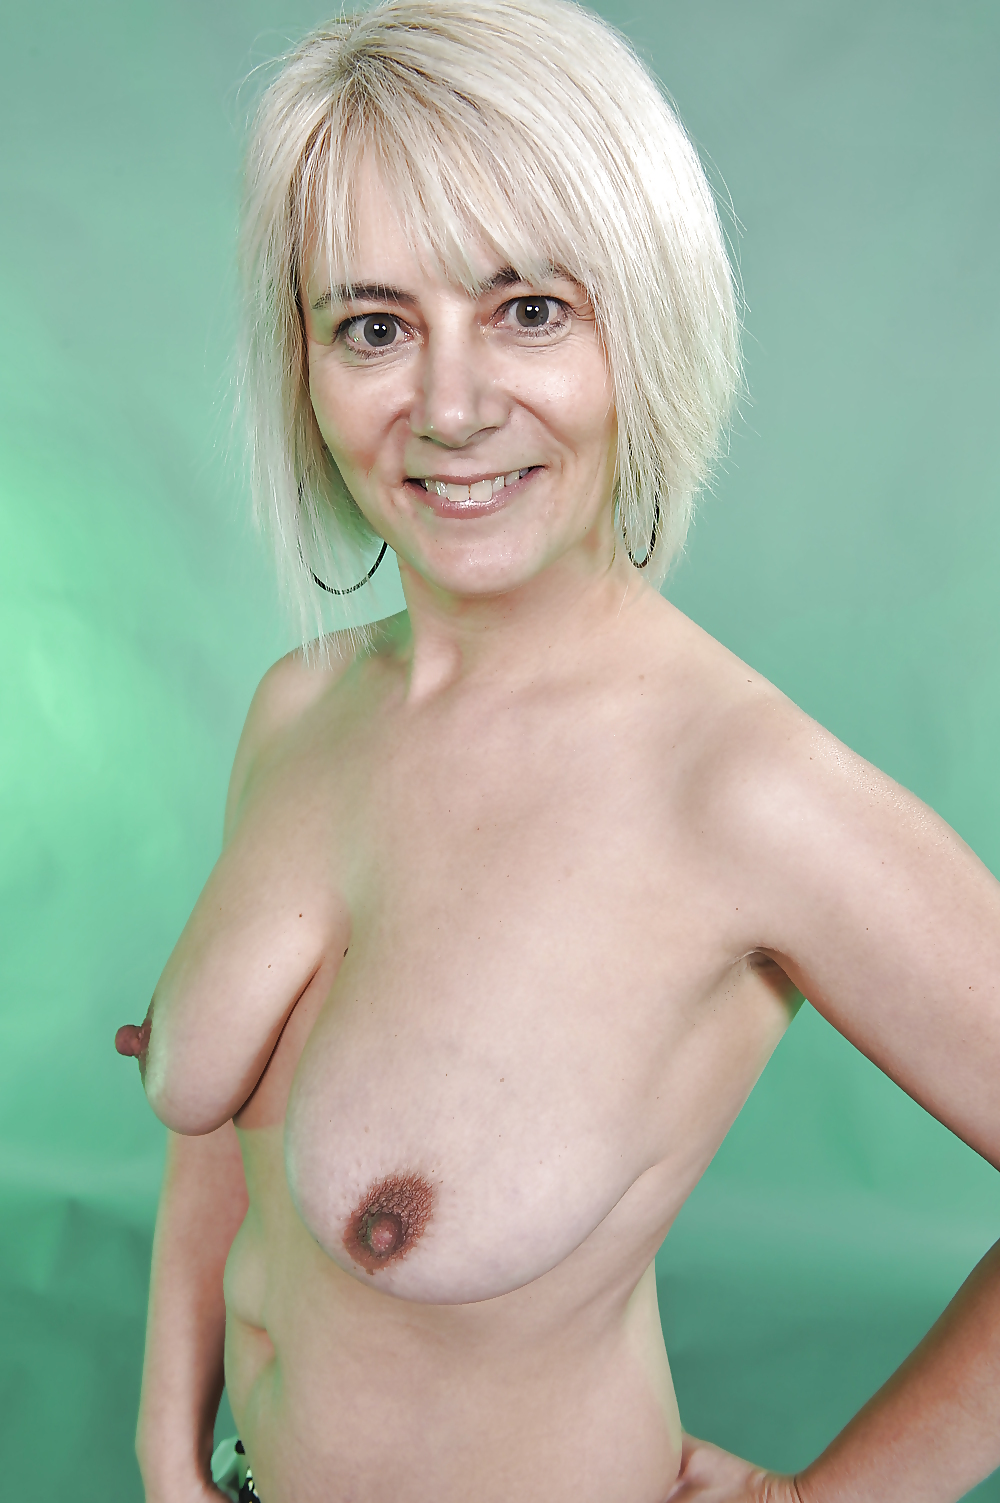 Naughty nipples willy or won't he